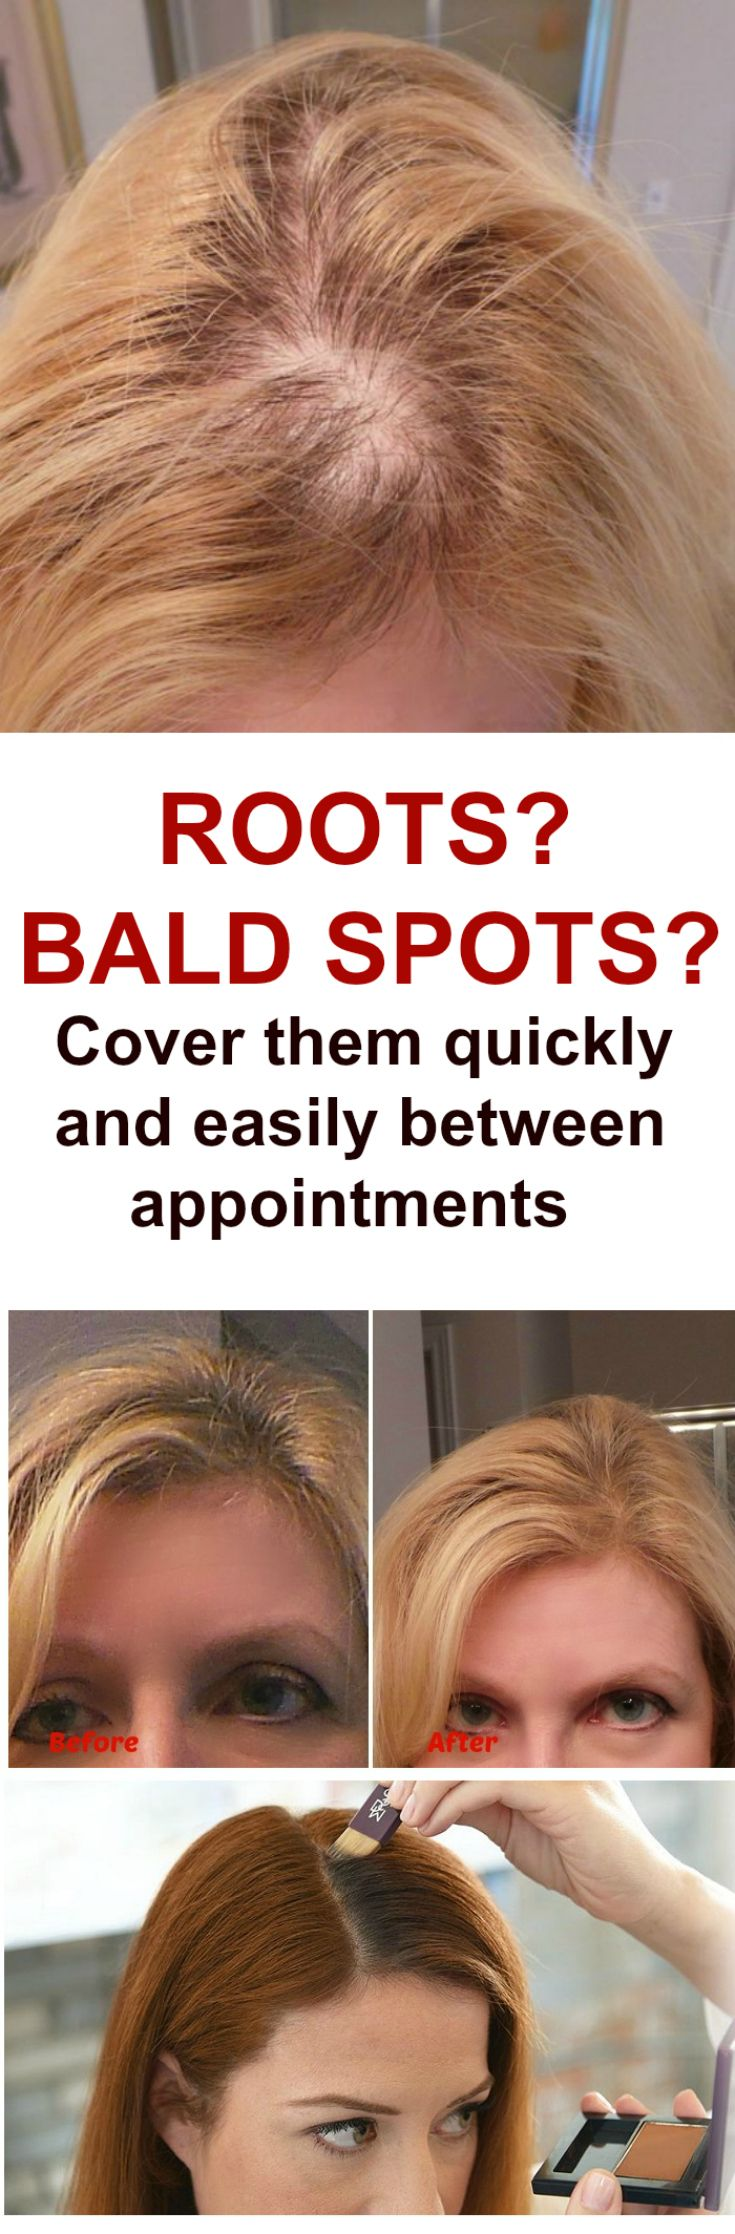 How do I cover Bald Spots? How to Cover Roots? Bald spot